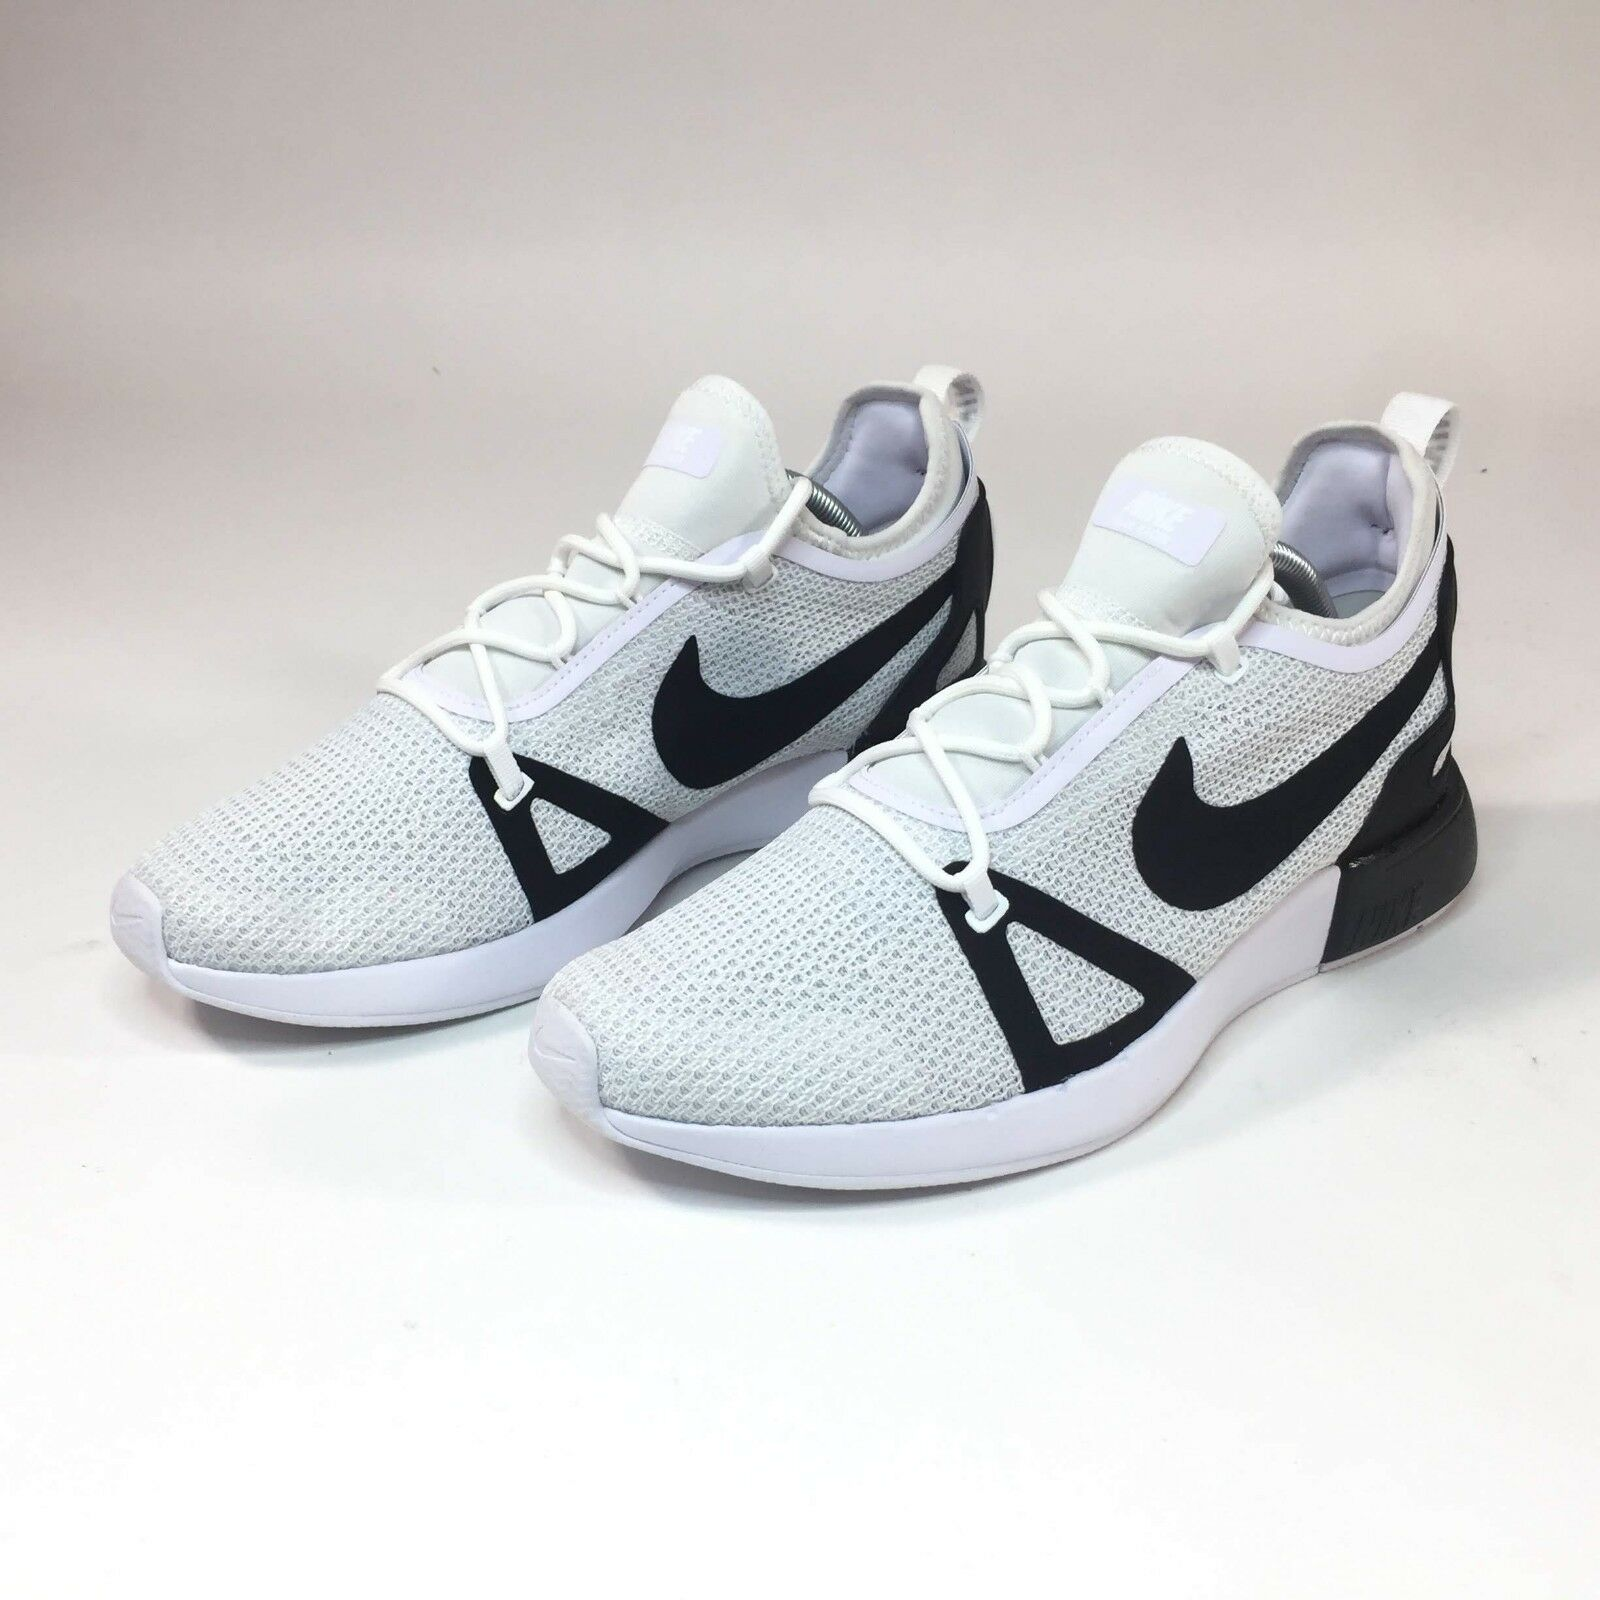 Nike Duel Racer White Black Pure Platinum 918228-102 Msrp 120